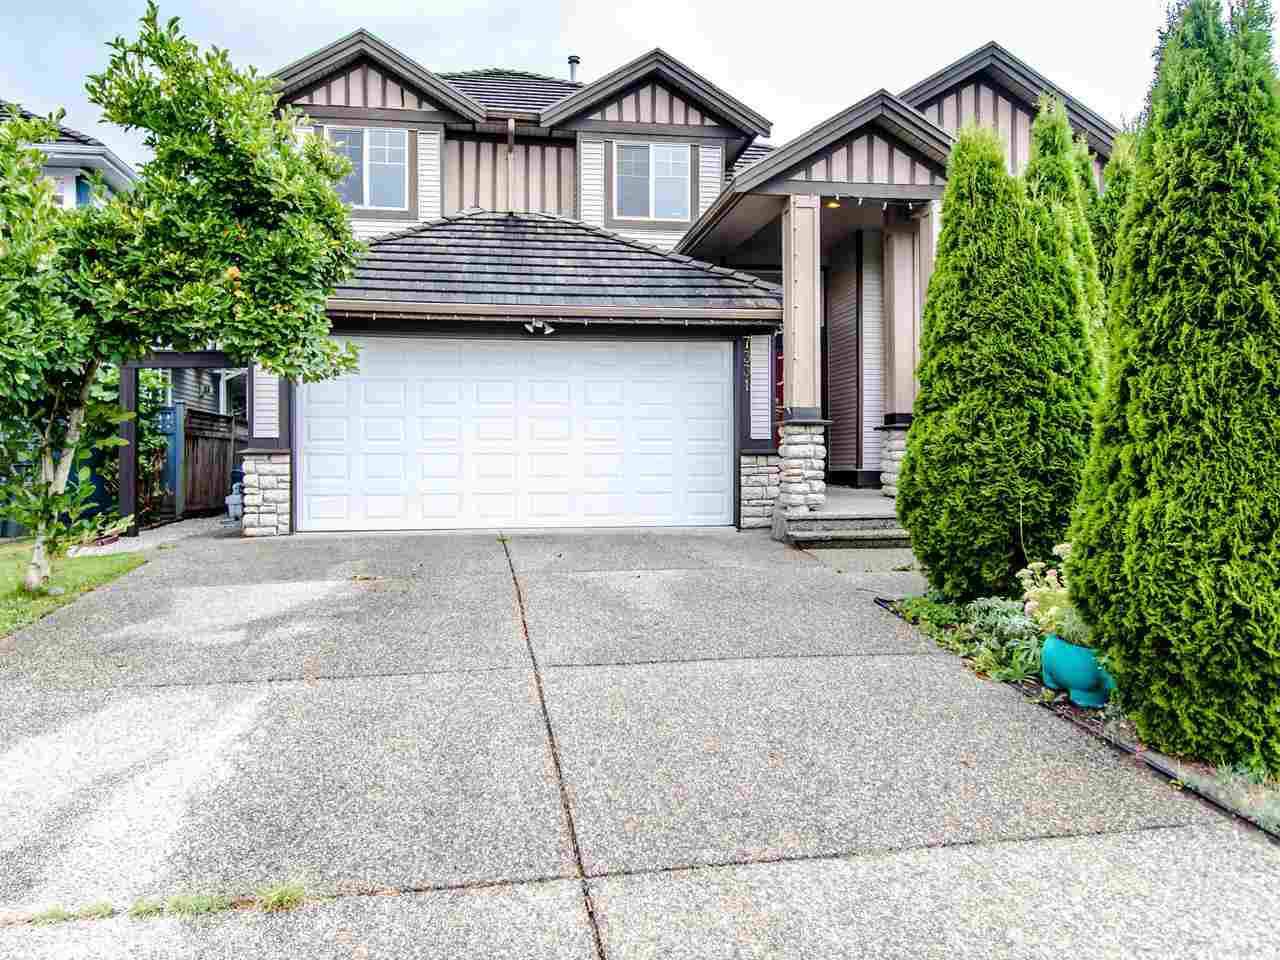 Main Photo: 7331 146 Street in Surrey: East Newton House for sale : MLS®# R2490131